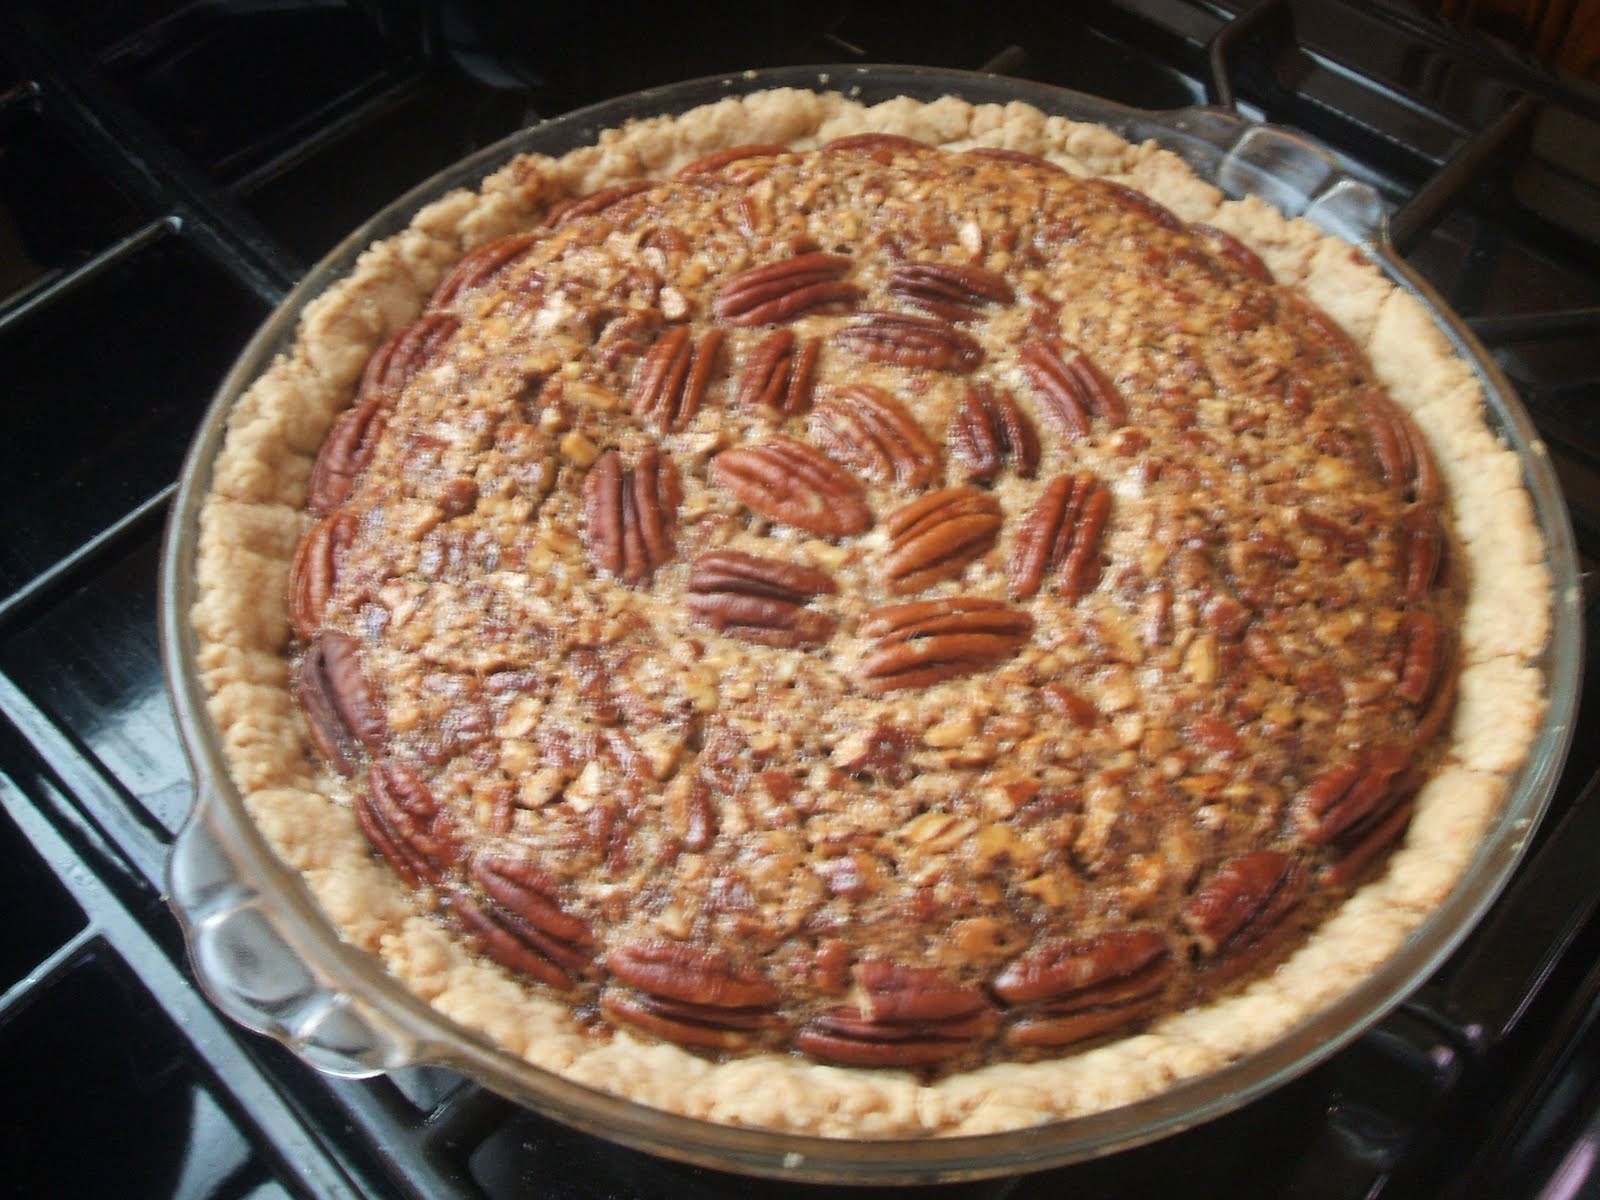 Sherry Starts Cooking: Browned Butter Pecan Pie